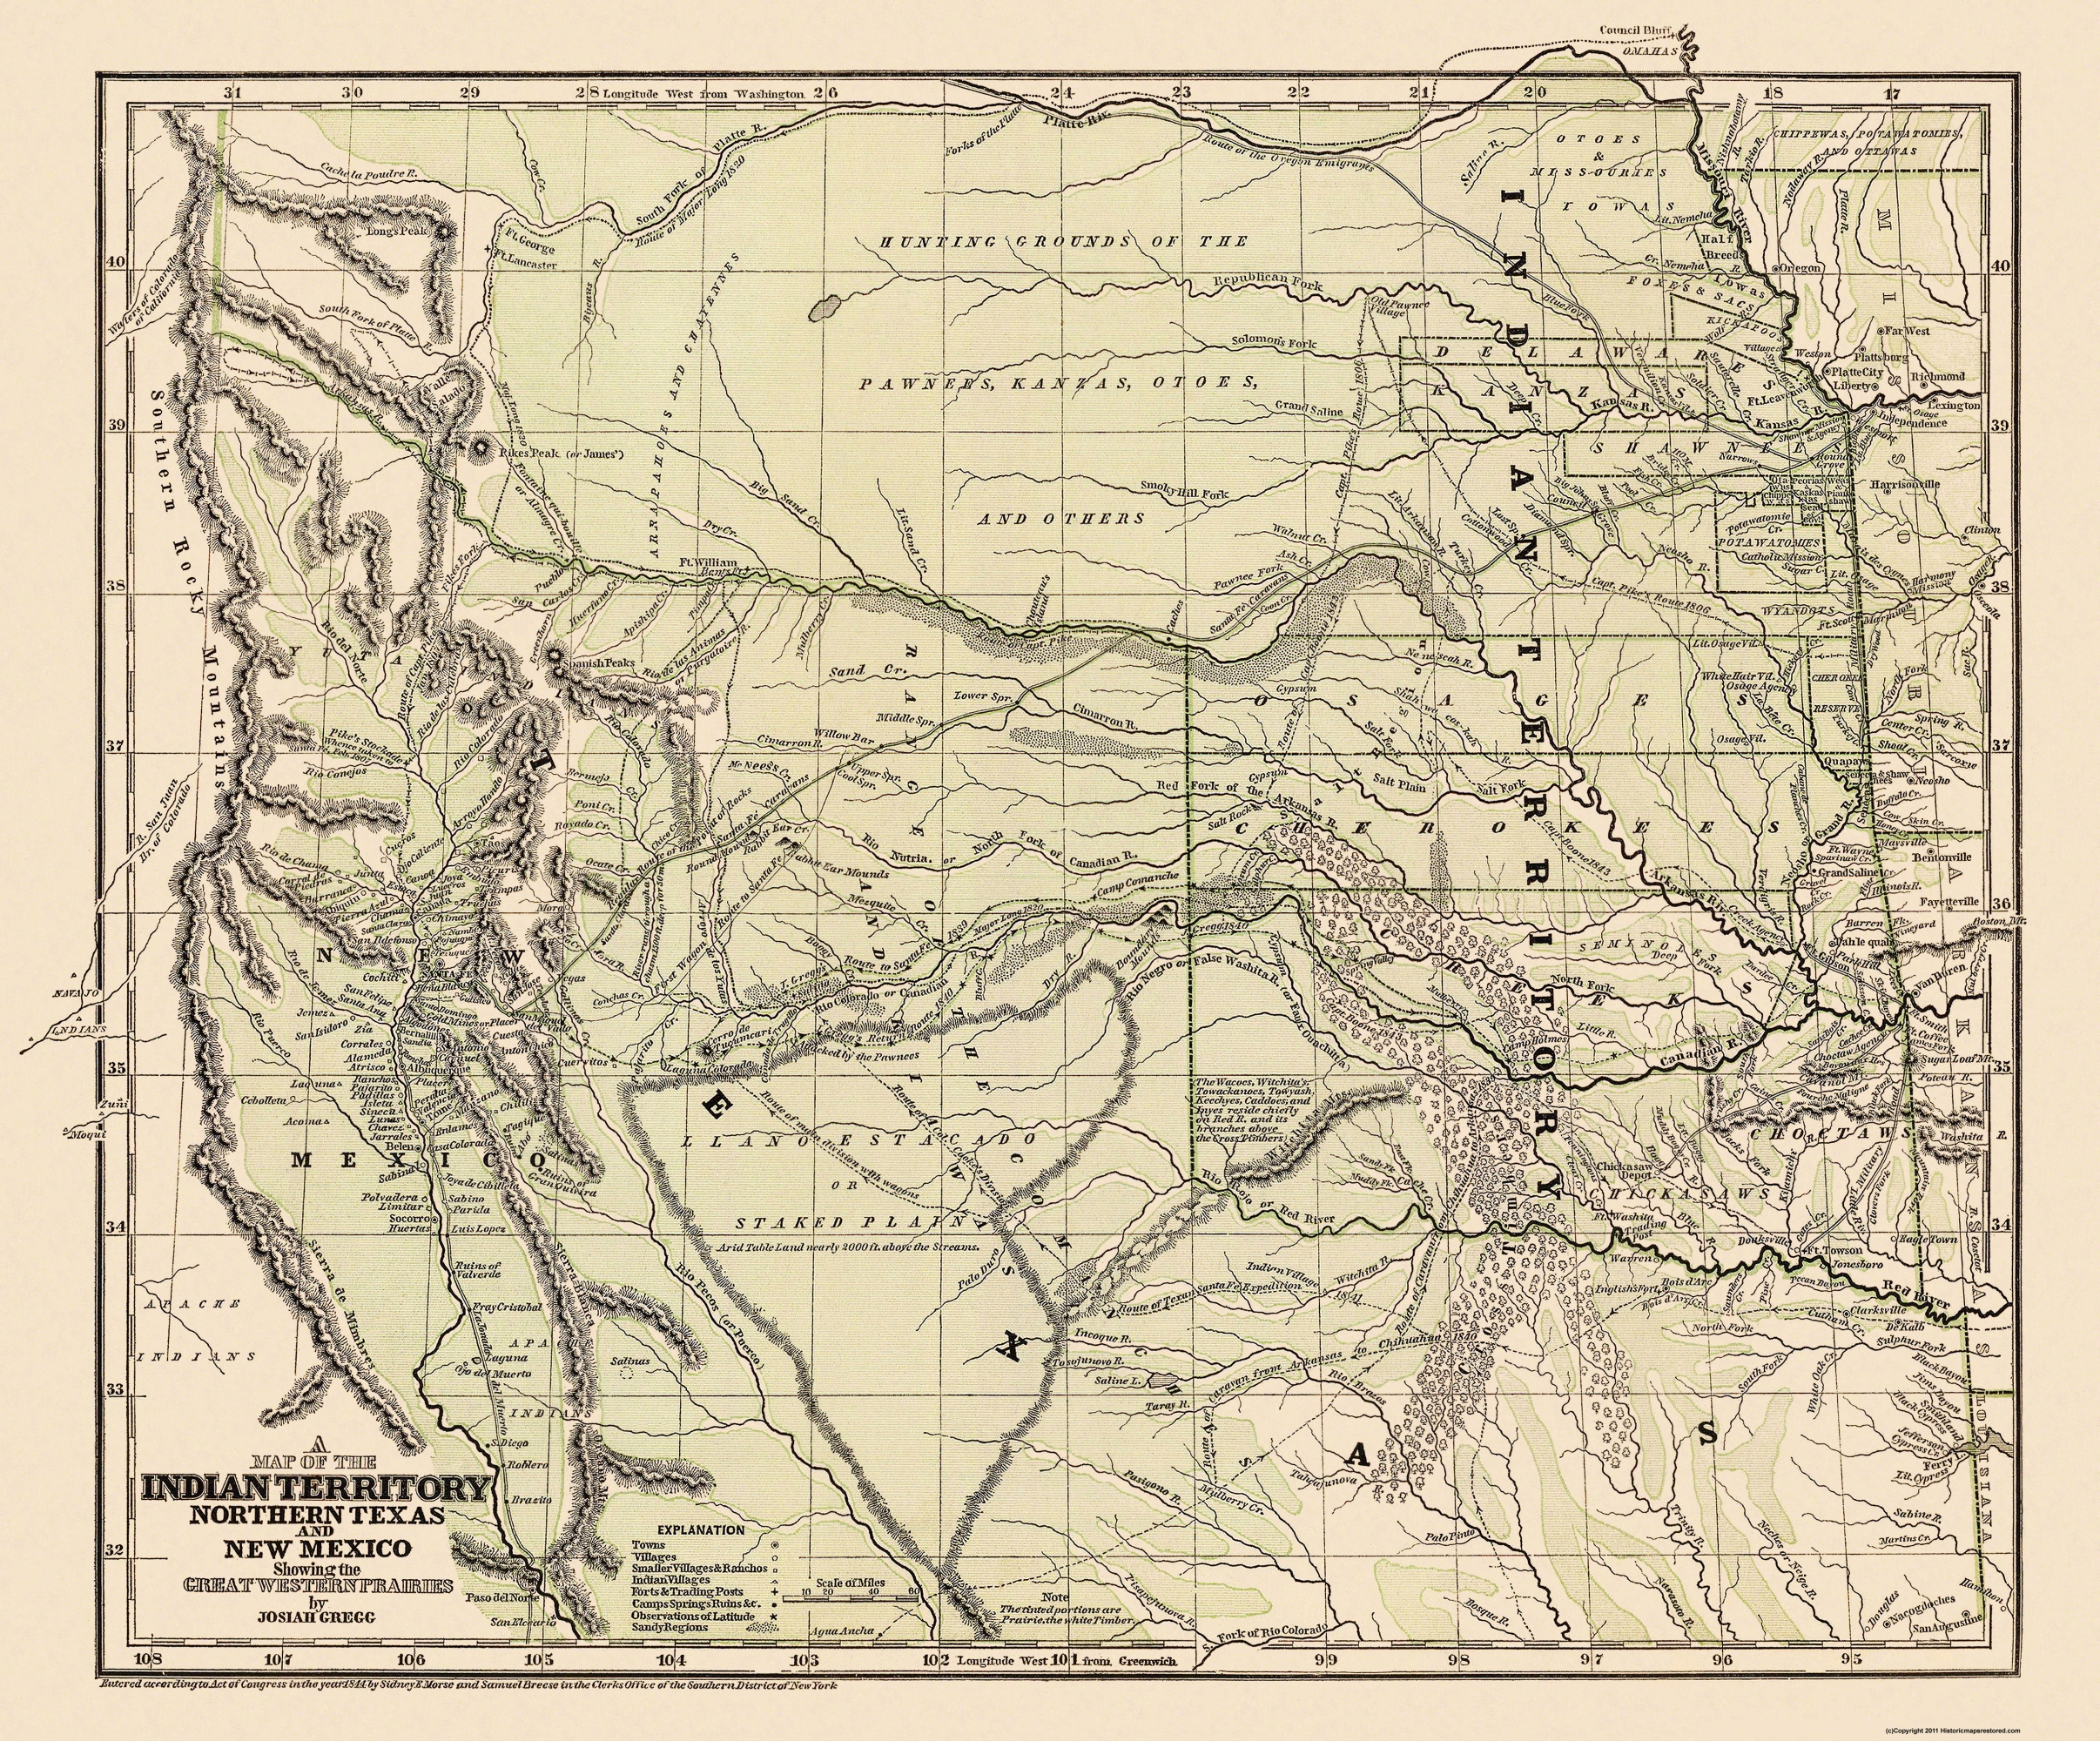 Map Of Texas New Mexico.Old State Map Indian Territory Texas New Mexico 1844 27 75 X 23